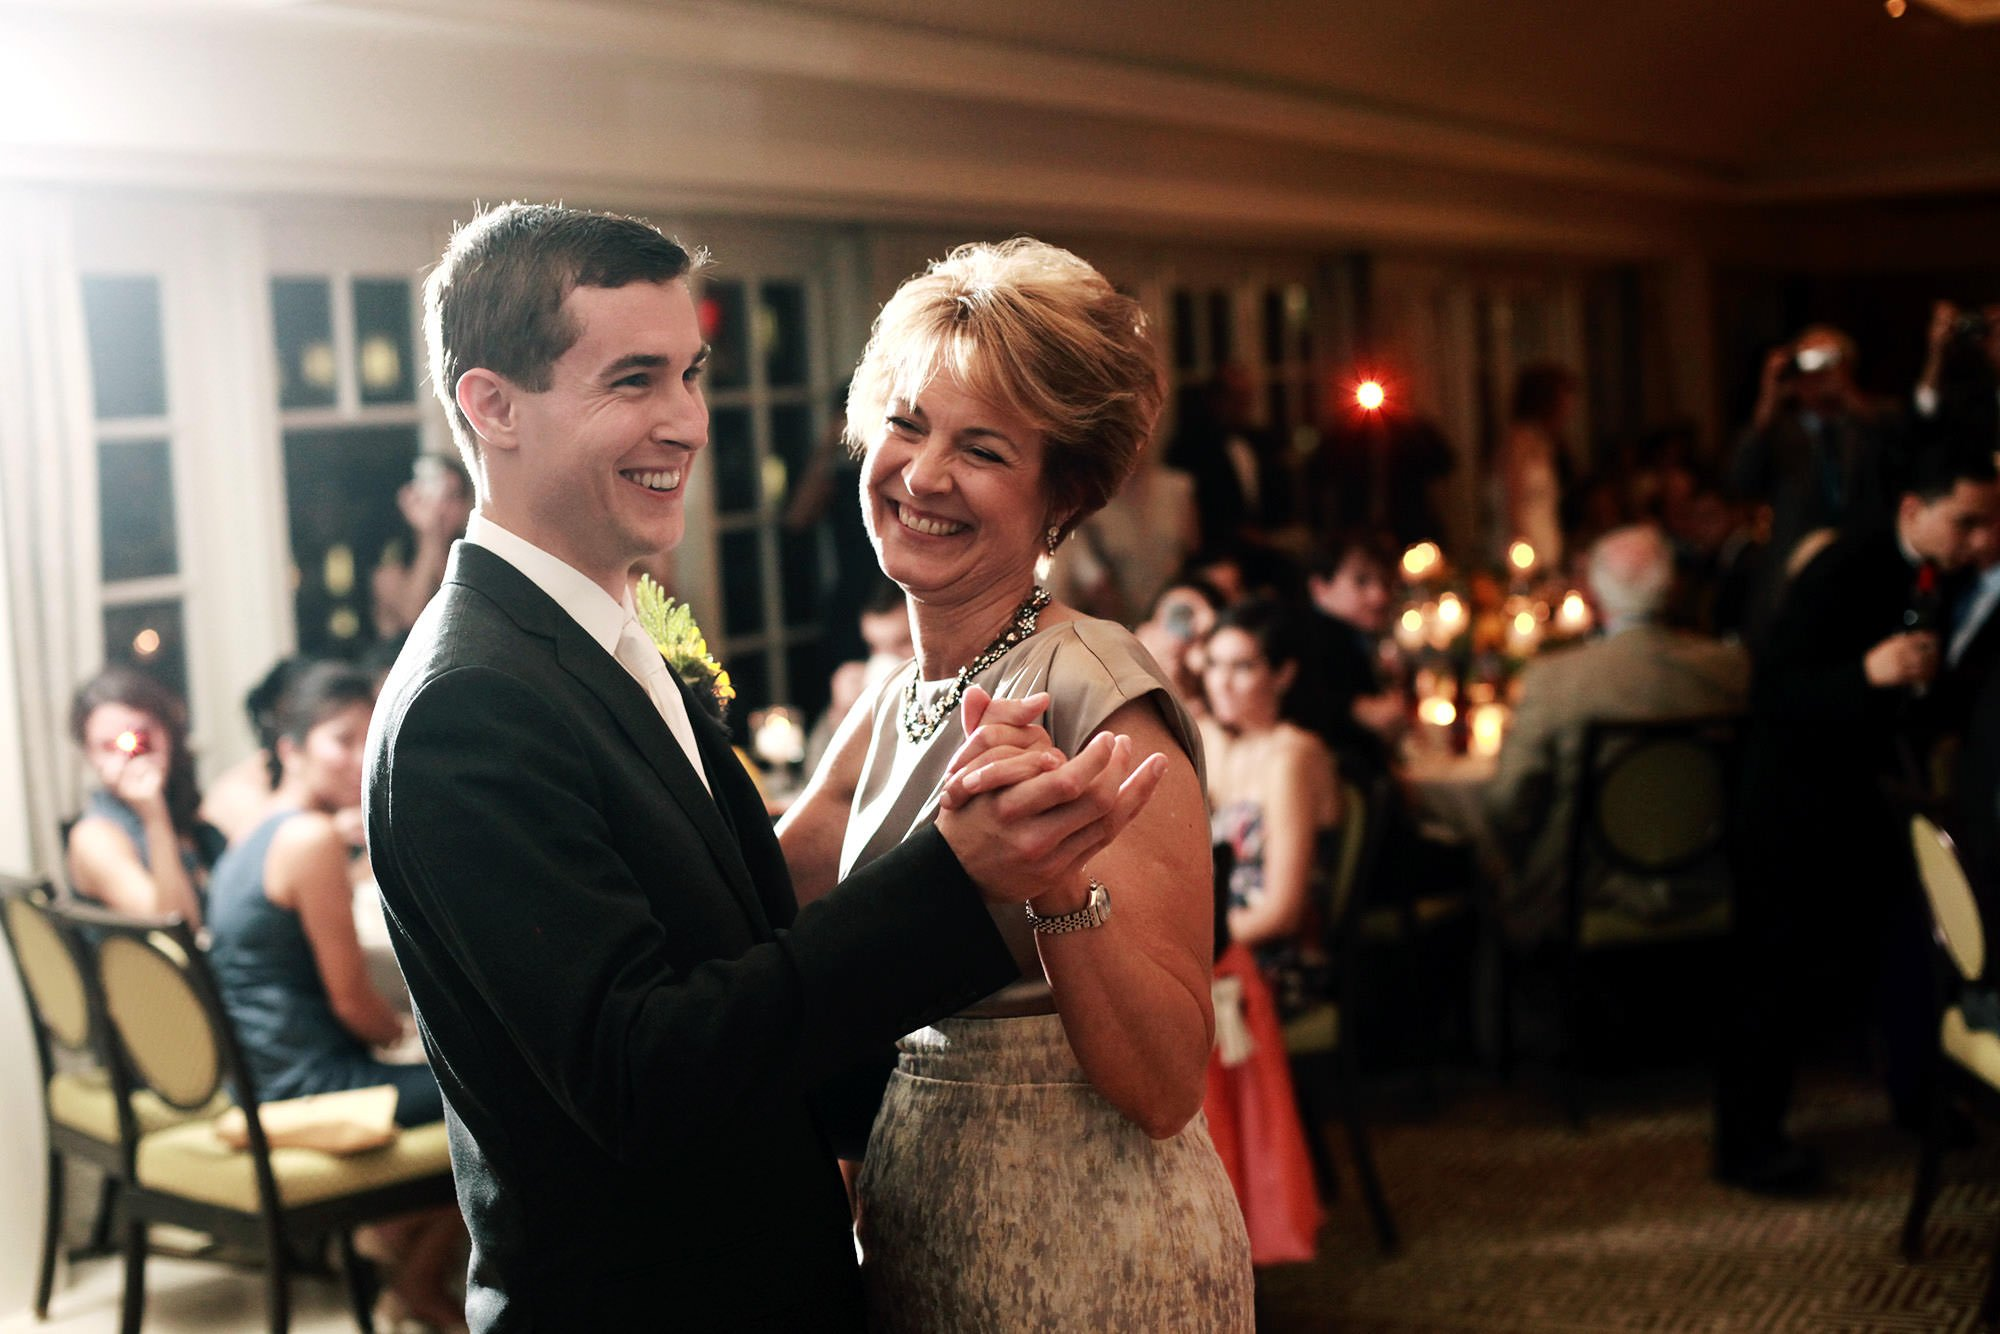 The groom dances with his mother during the wedding reception at the Hay Adams hotel.